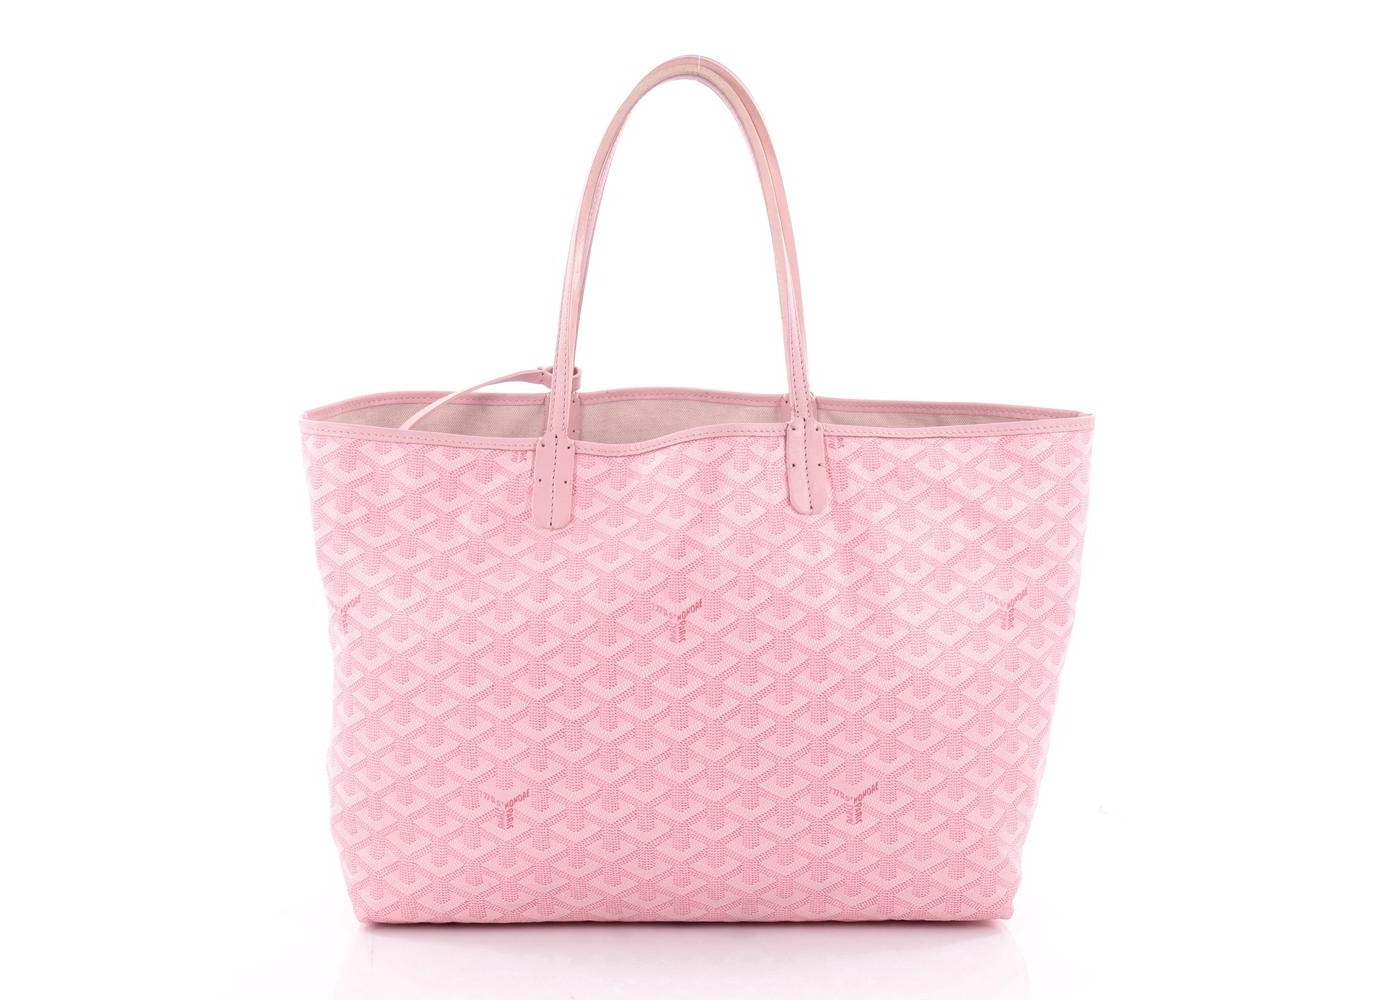 24bde42053c9db Another Goyard color option is Pink, which was a one-off special color  released many years ago. You won't find them at Goyard anymore.